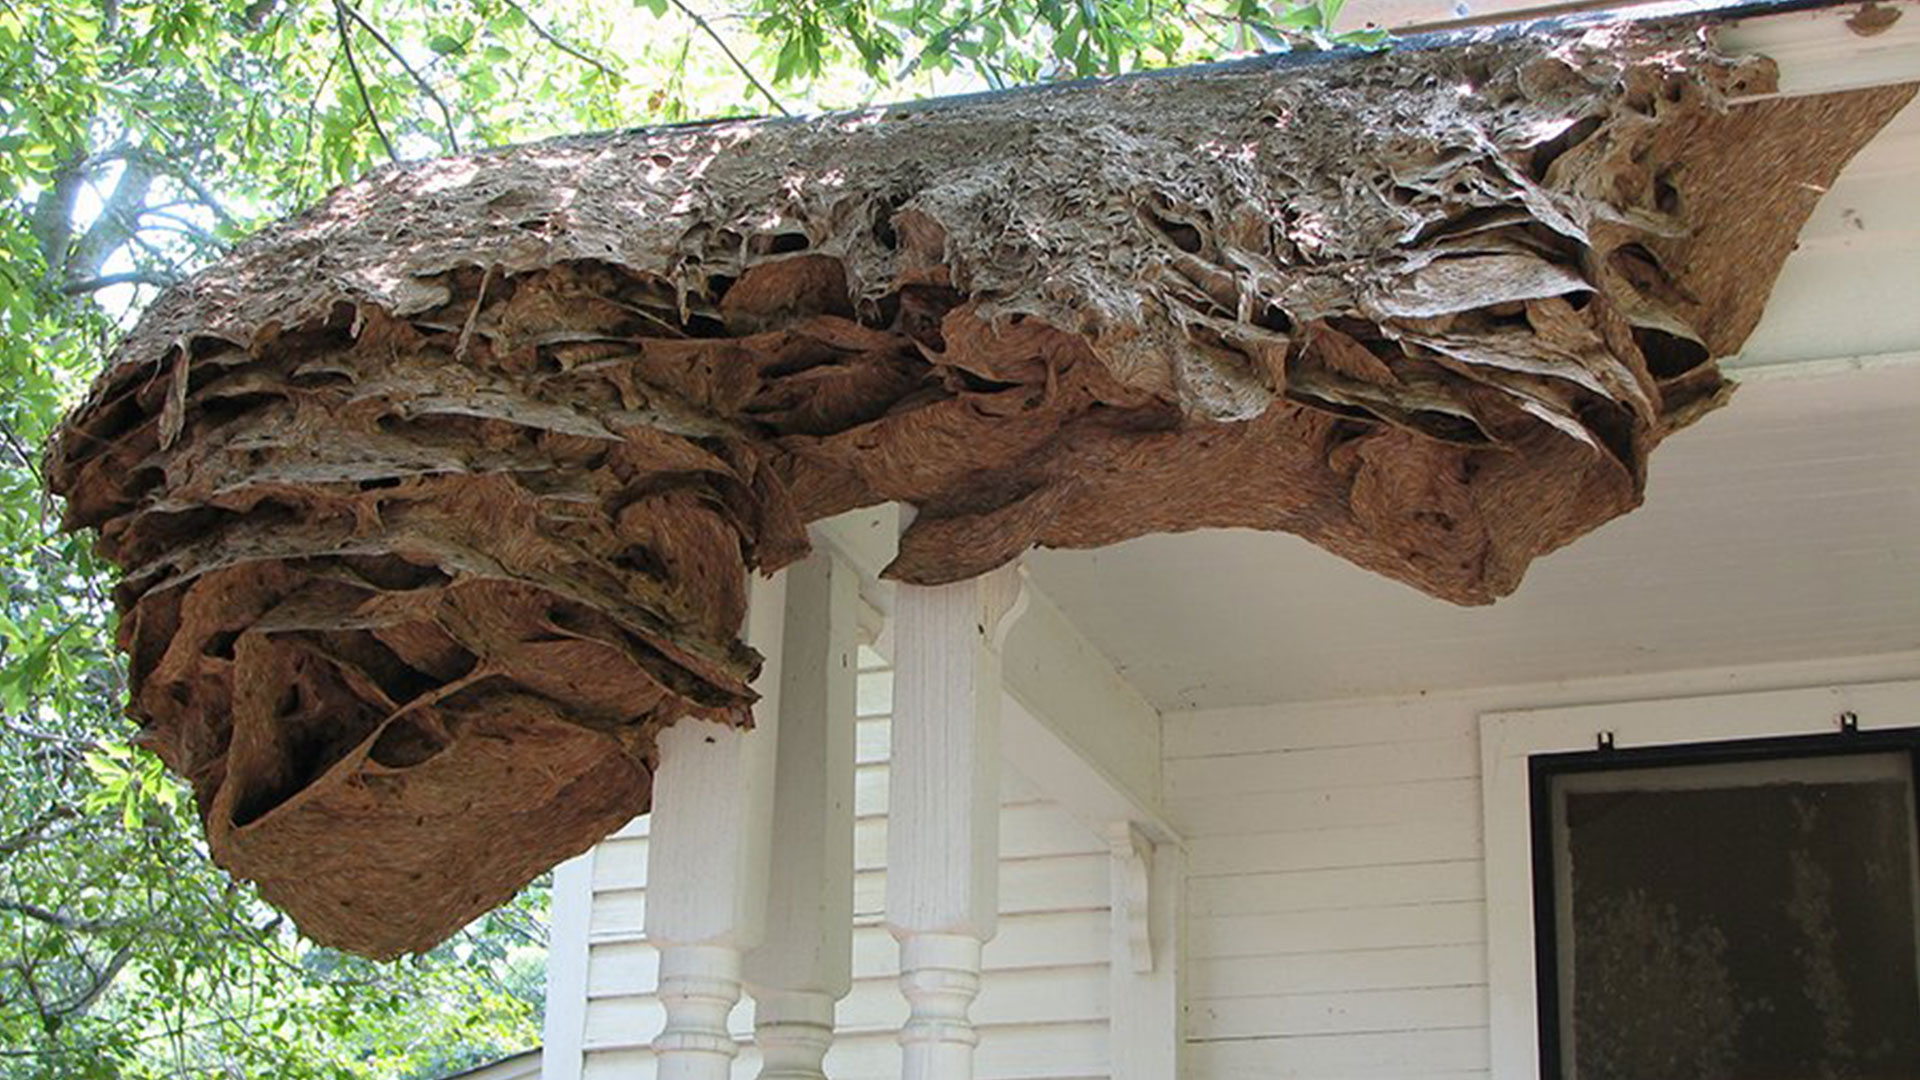 Wasp Super Nest